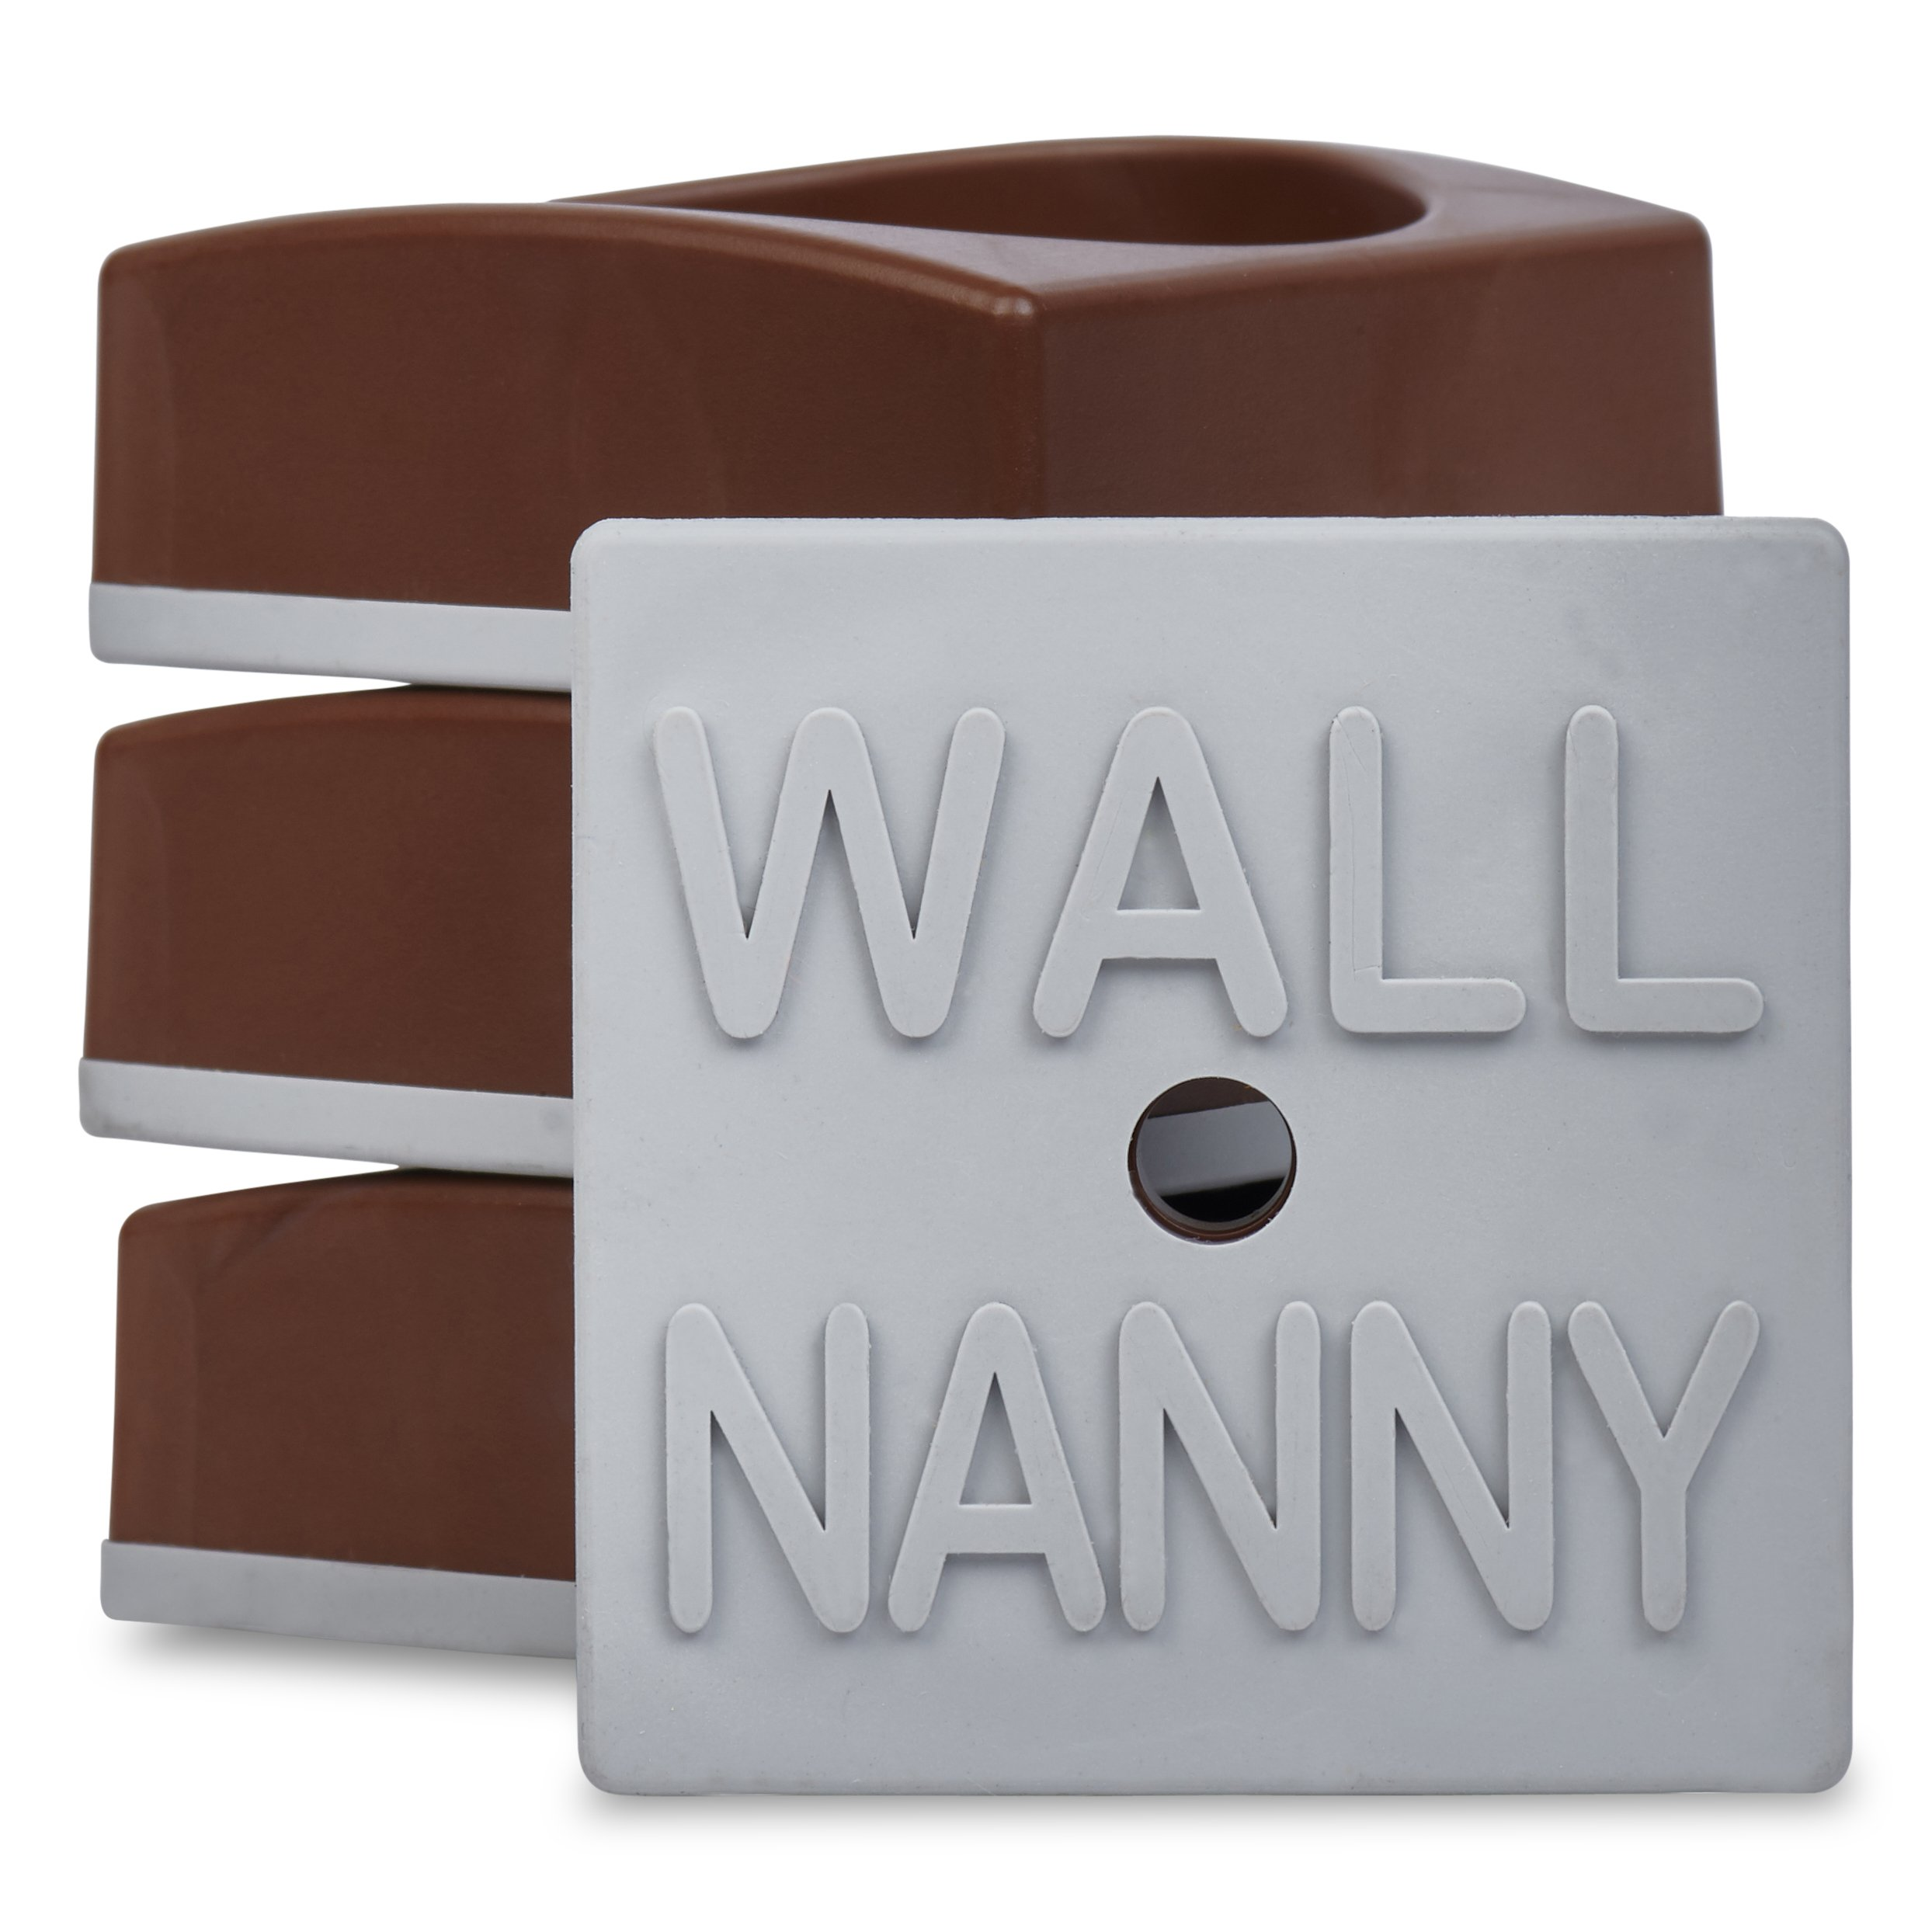 Wall Nanny Mini (4 Pack - Made in USA) Smallest Low-Profile Wall Protector for Baby Gates - Perfect in Doorways - Best Saver Cups Guard Trim & Paint for Child Dog Pet & Safety Pressure Gate (Brown) by Wall Nanny